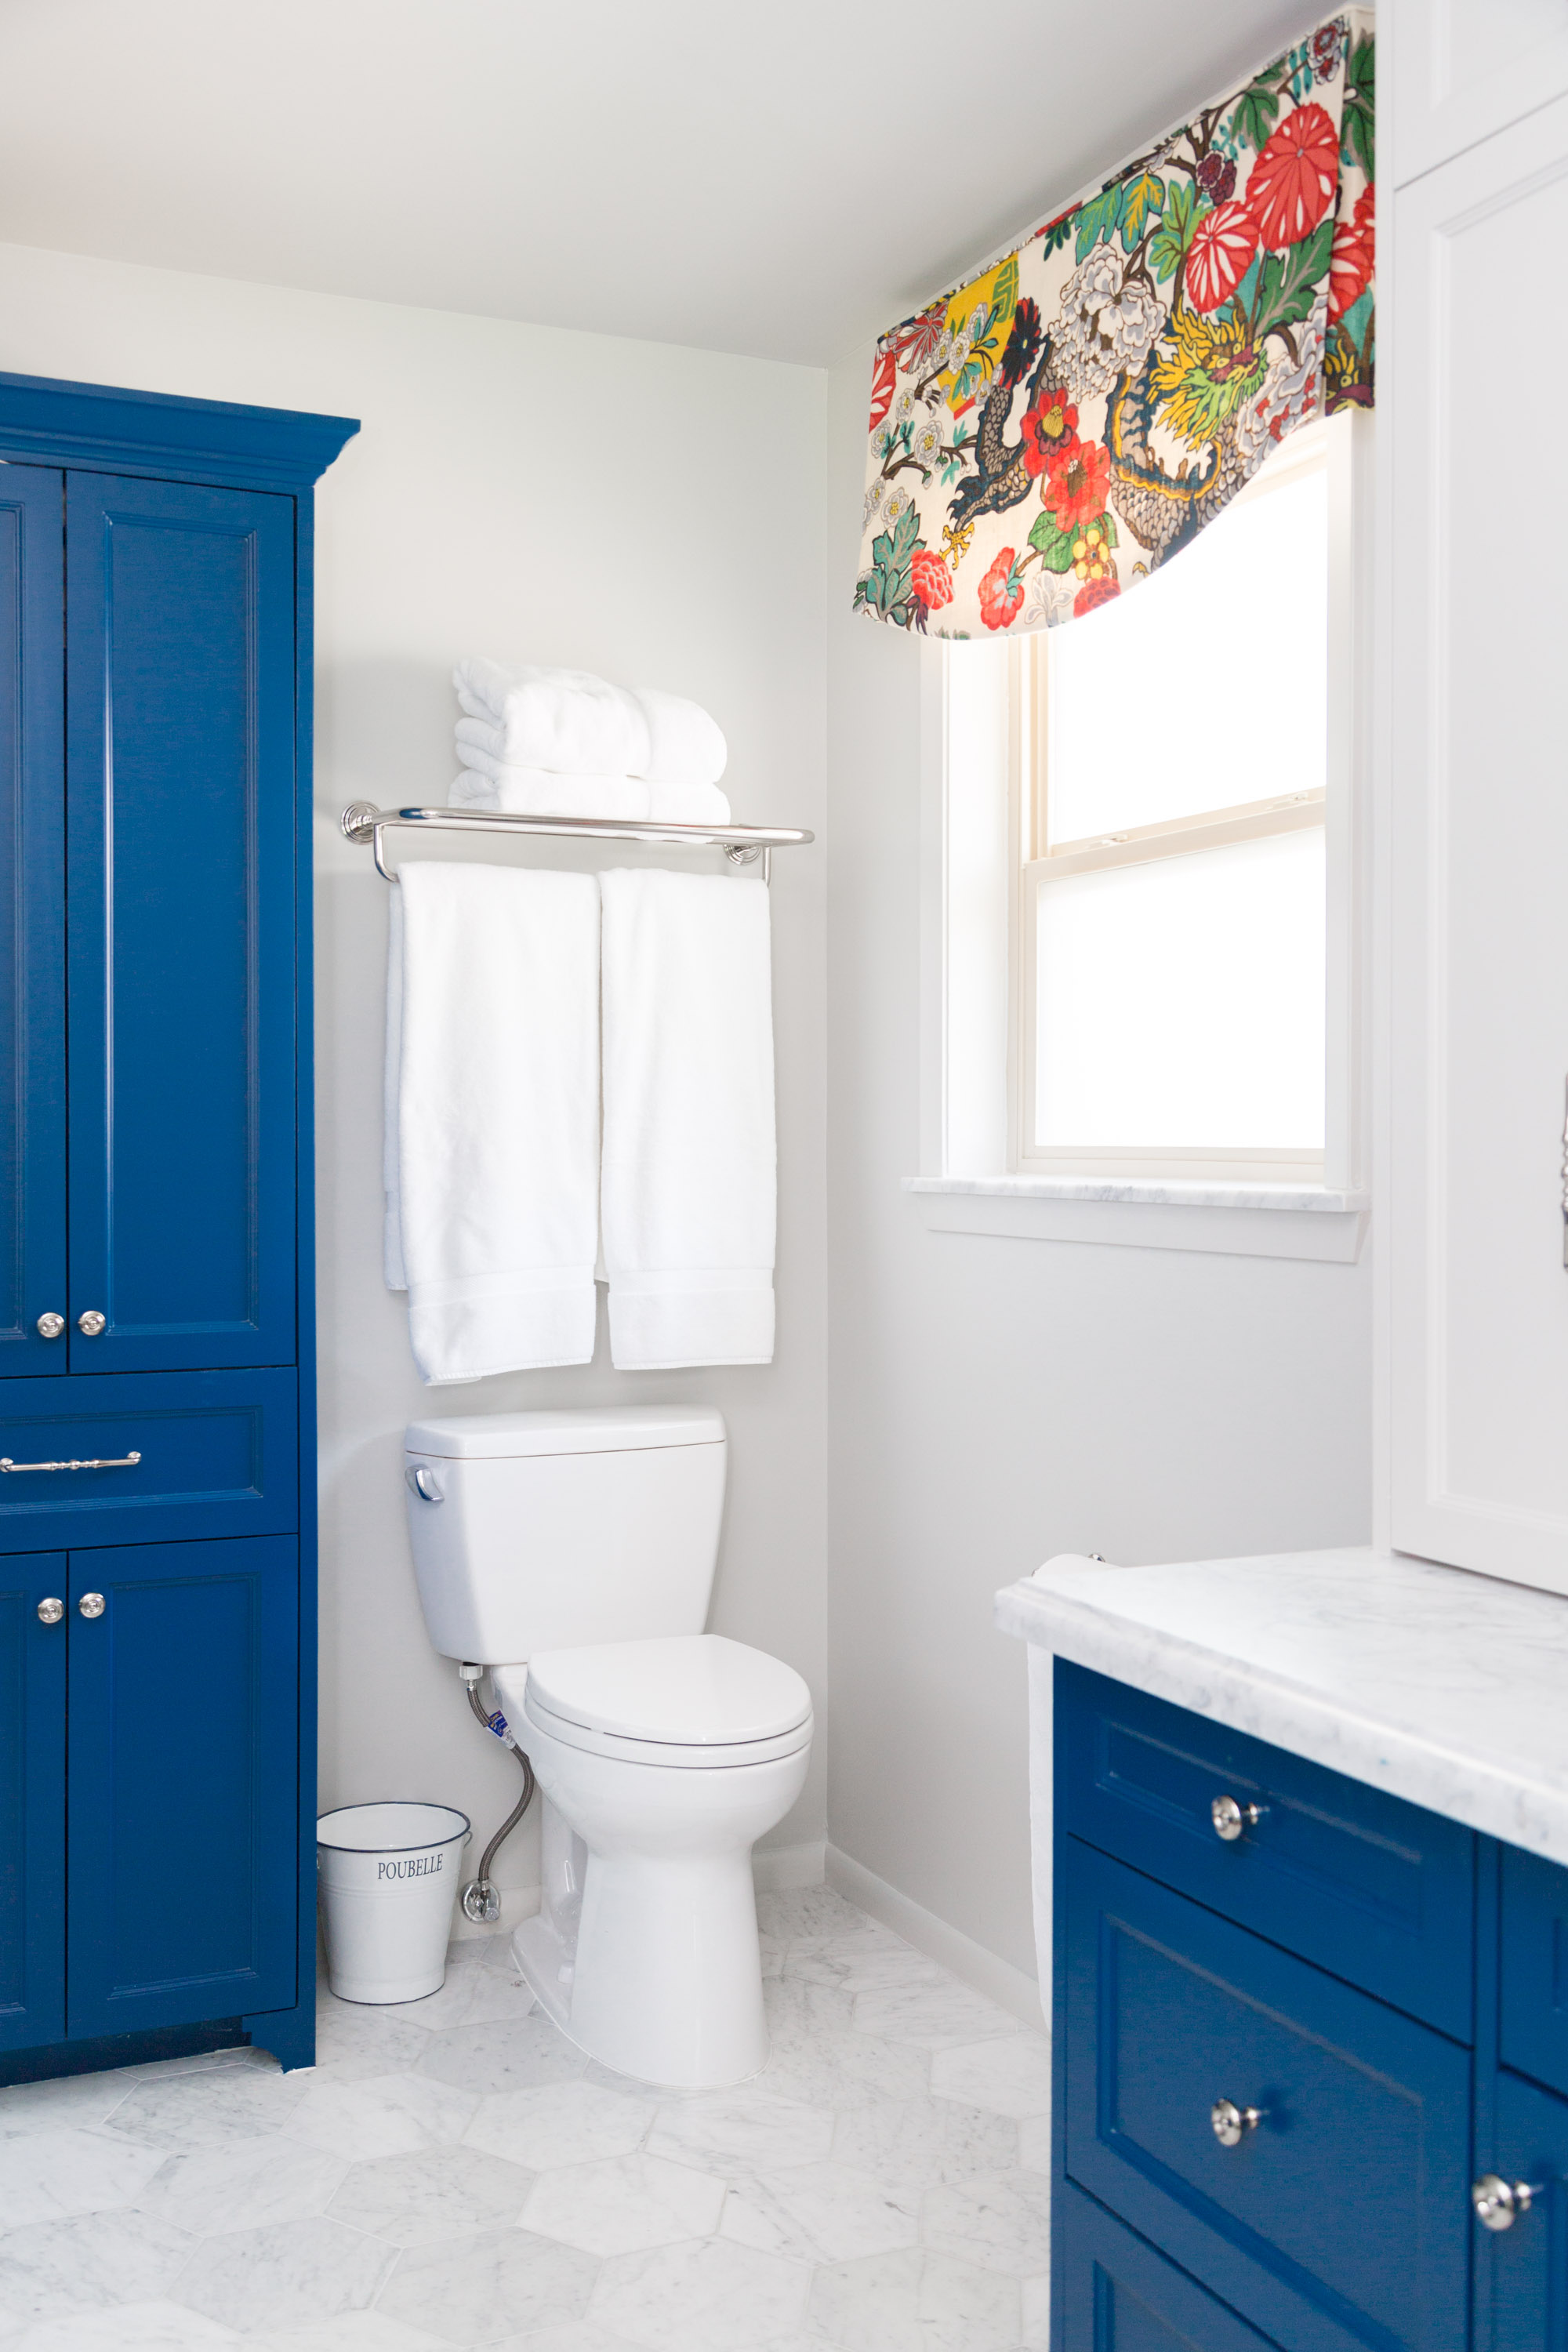 Bathroom remodel with white Carrara marble and blue cabinetry Designer: Carla Aston